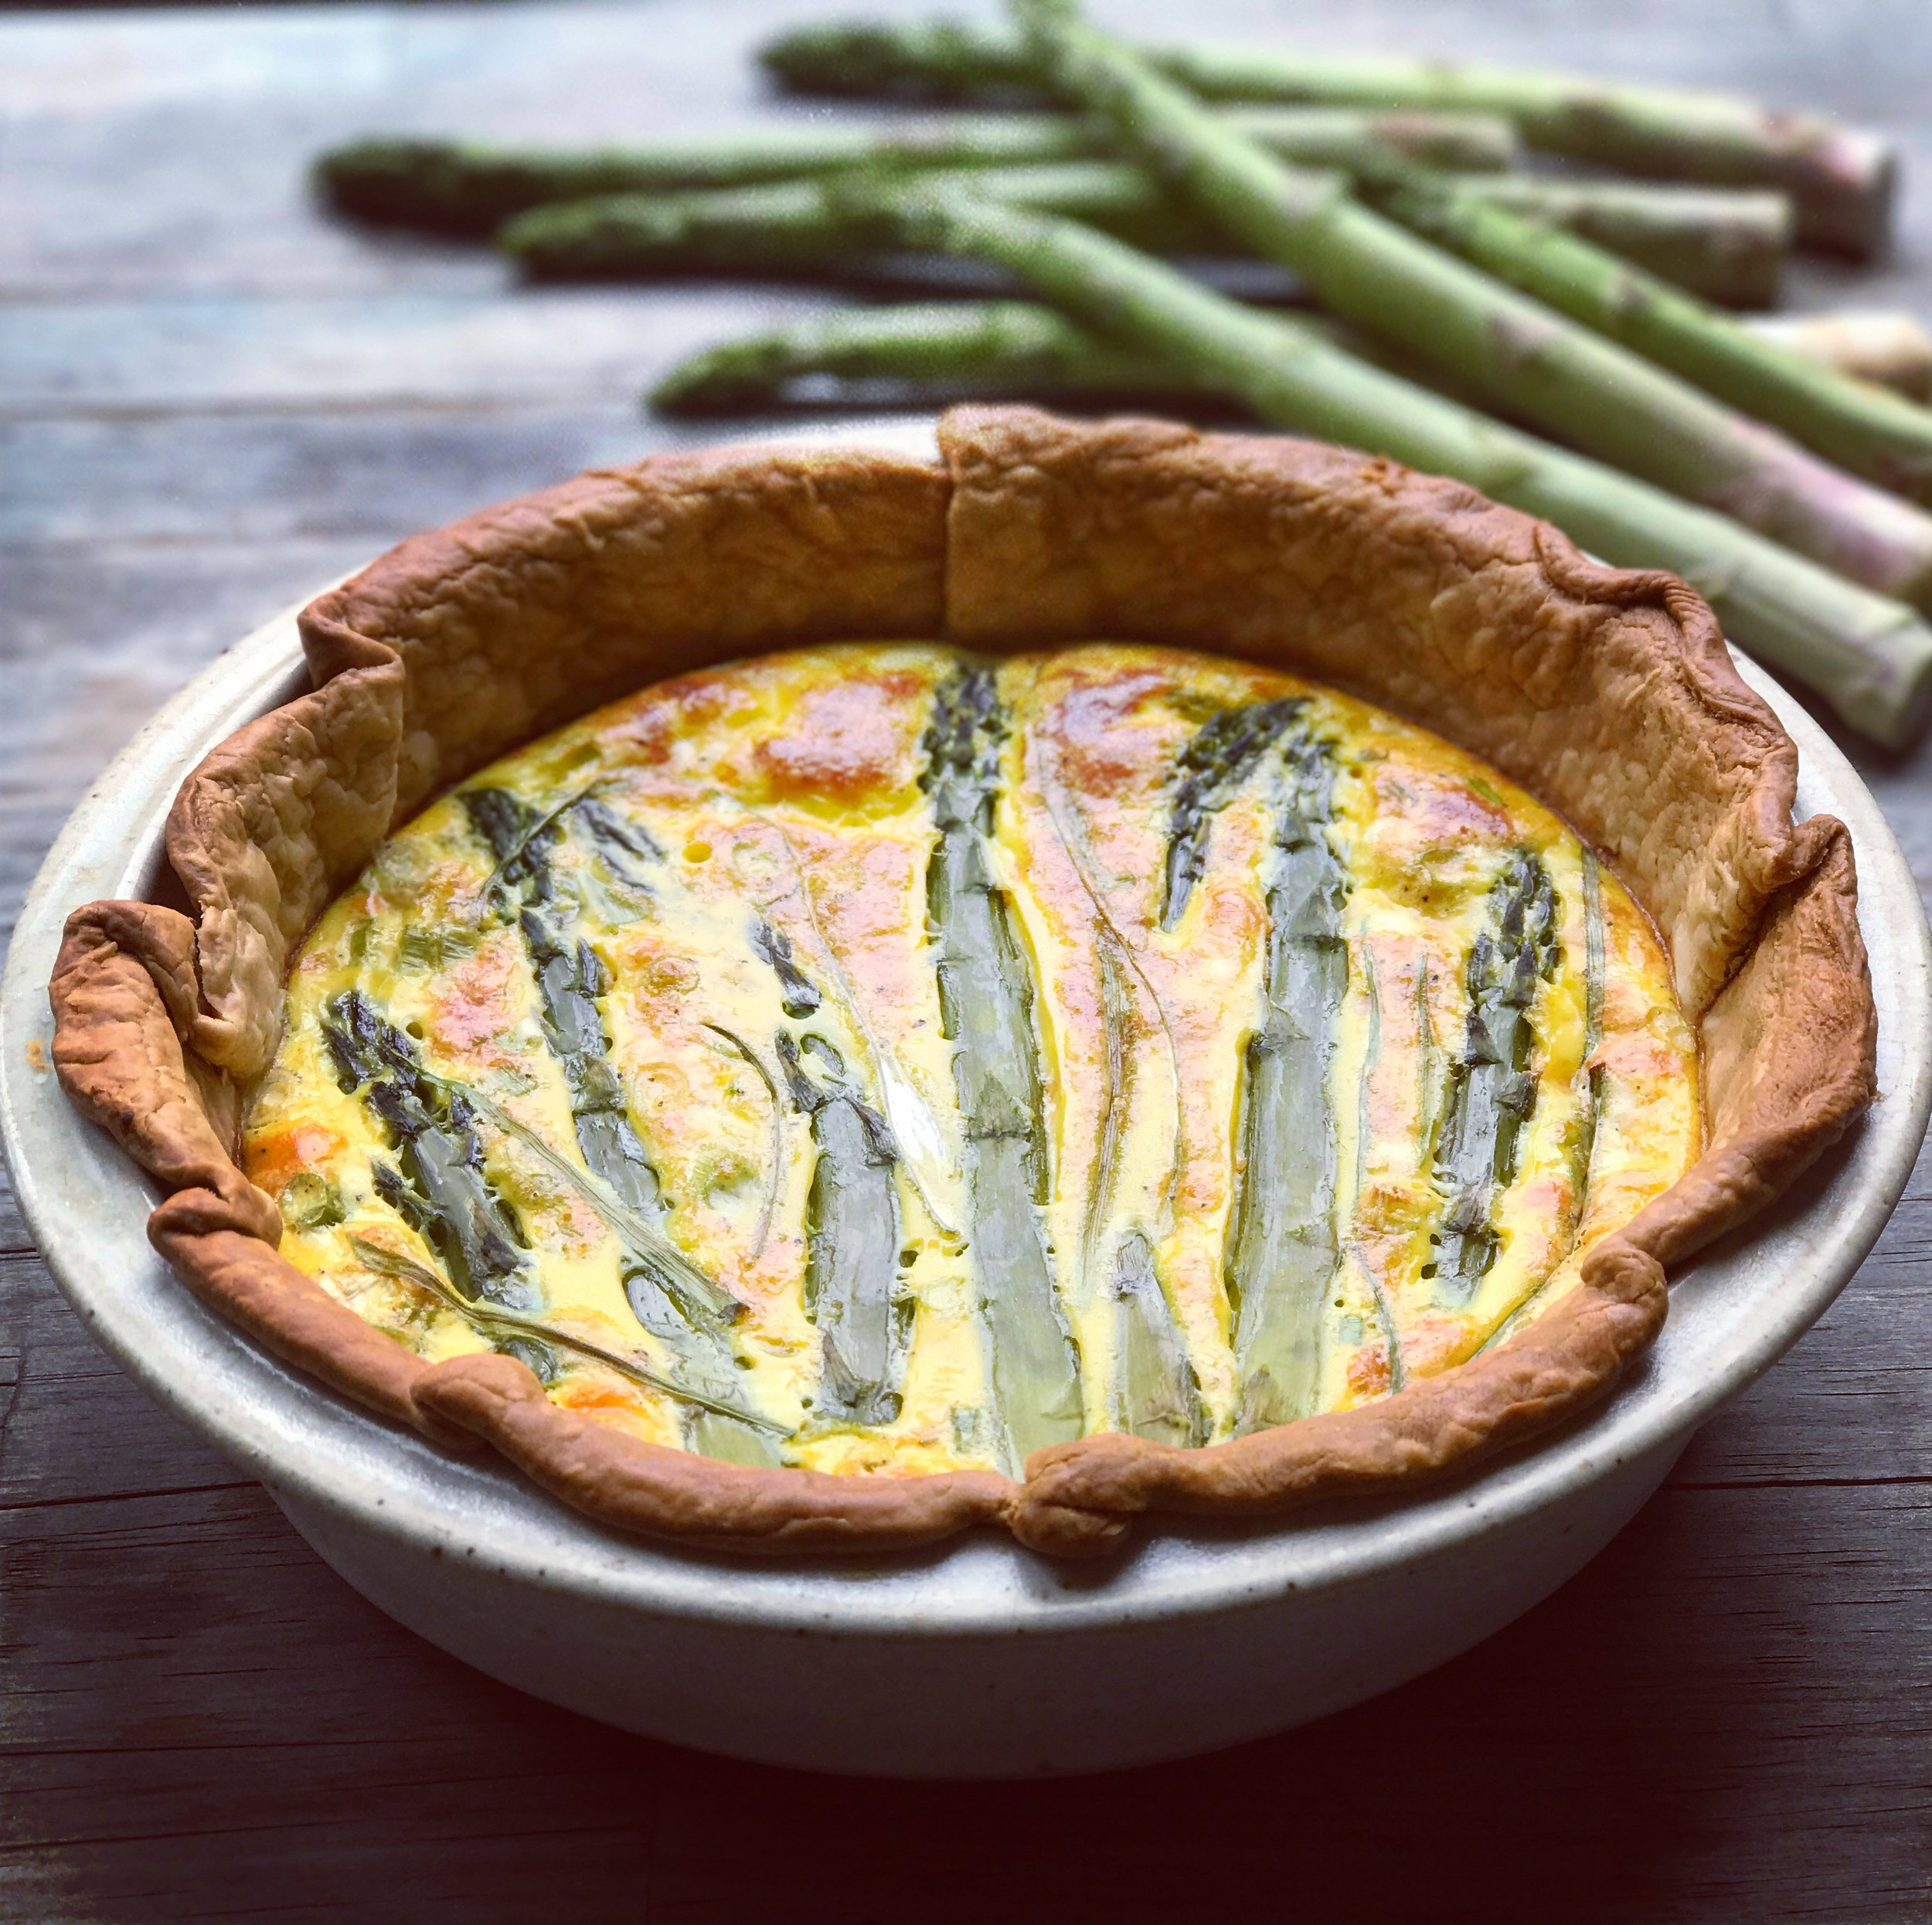 Bone Broth Asparagus Quiche recipe made with bone broth created by Bone Brewhouse.